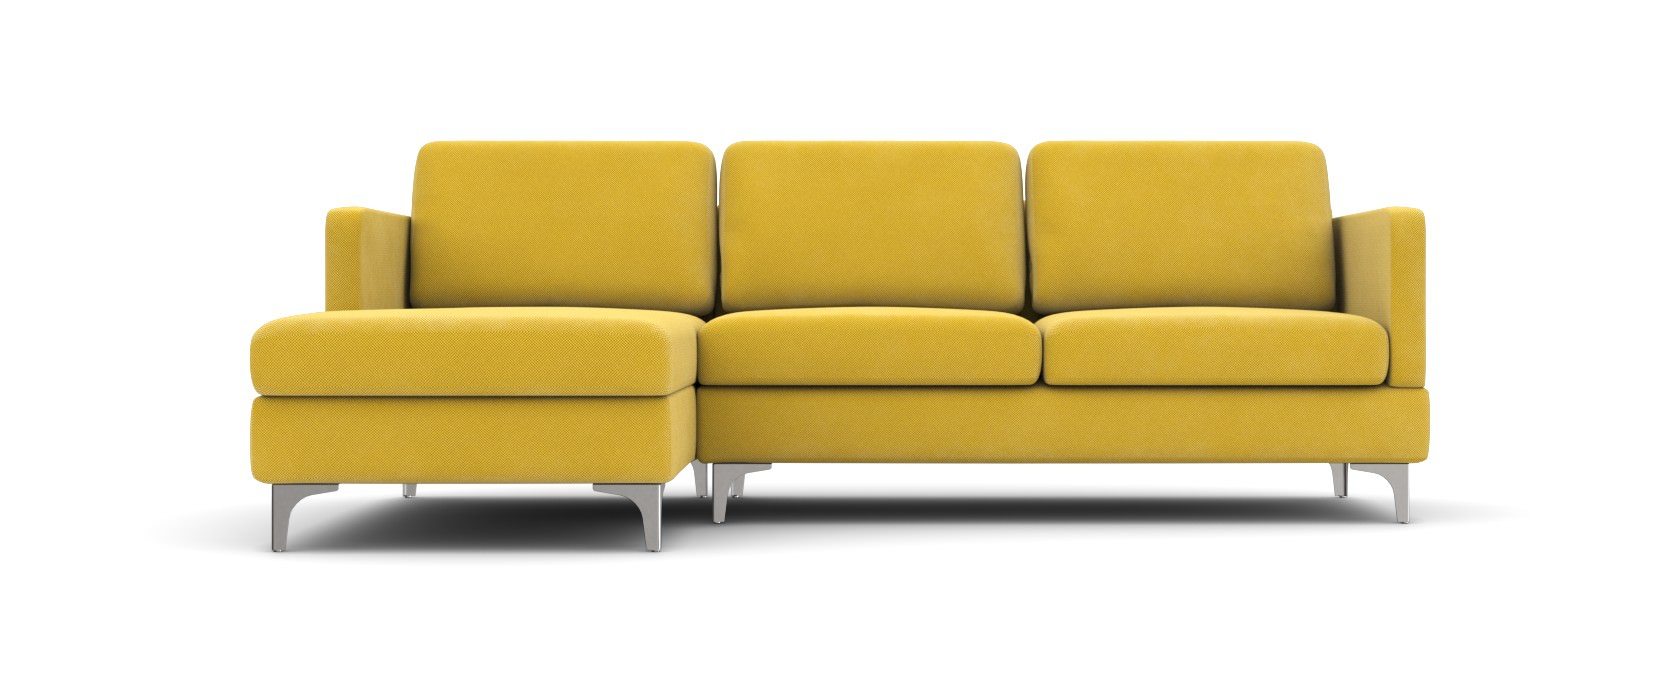 Sofa mit Chaiselongue Manfredo Club